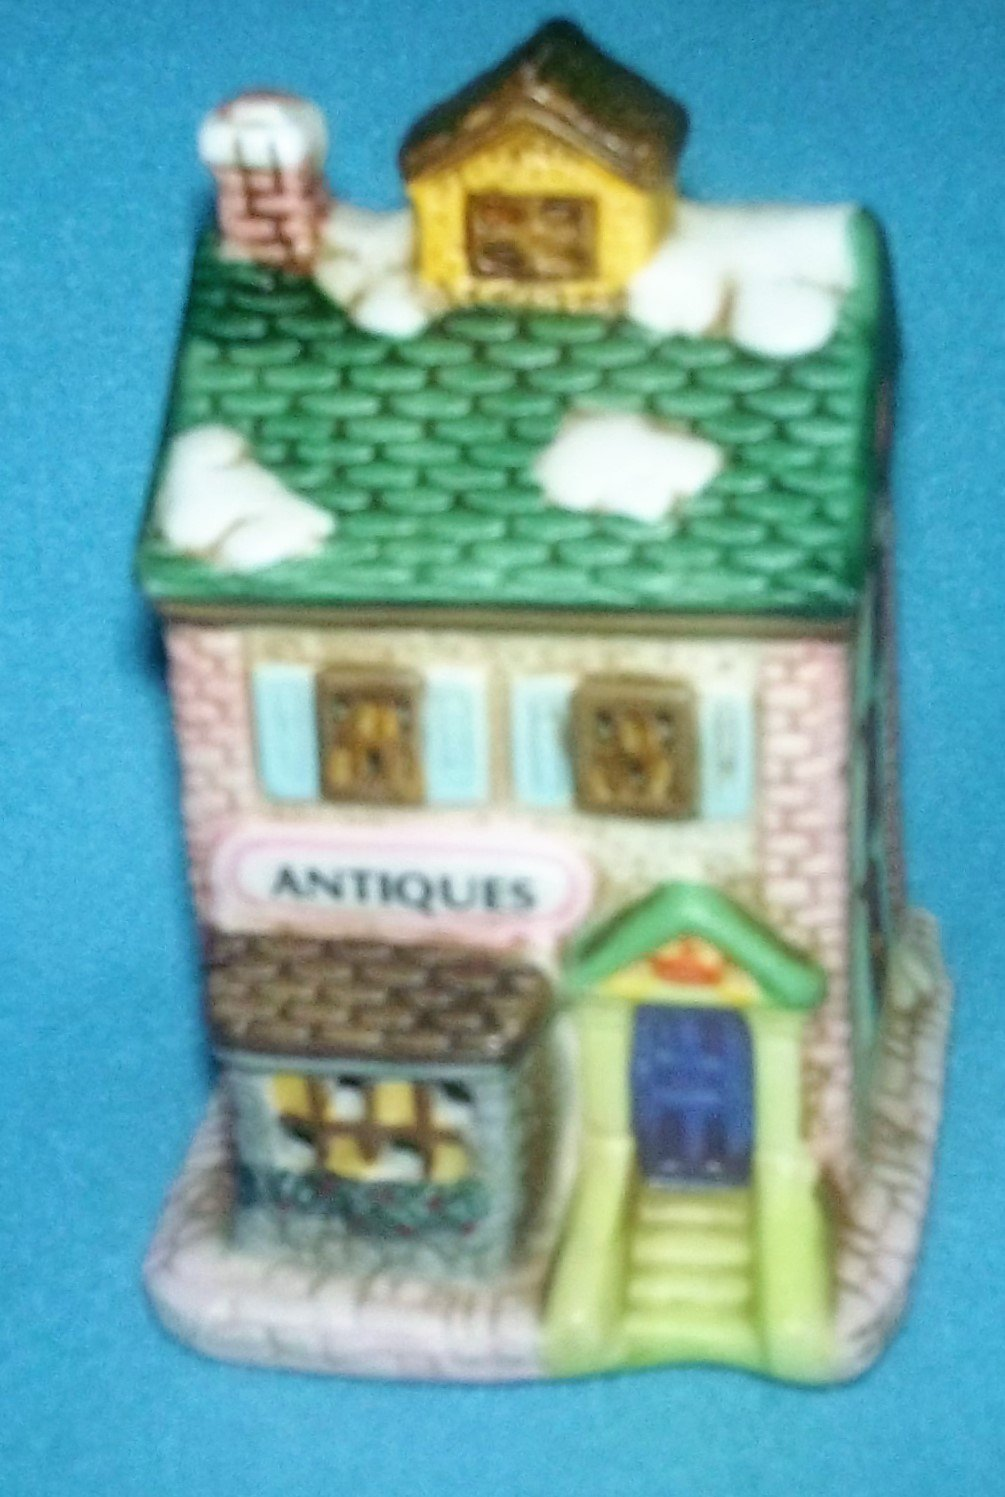 Vintage 1993 HOME TOWN AMERICA Christmas Village ANTIQUES STORE Mini Building